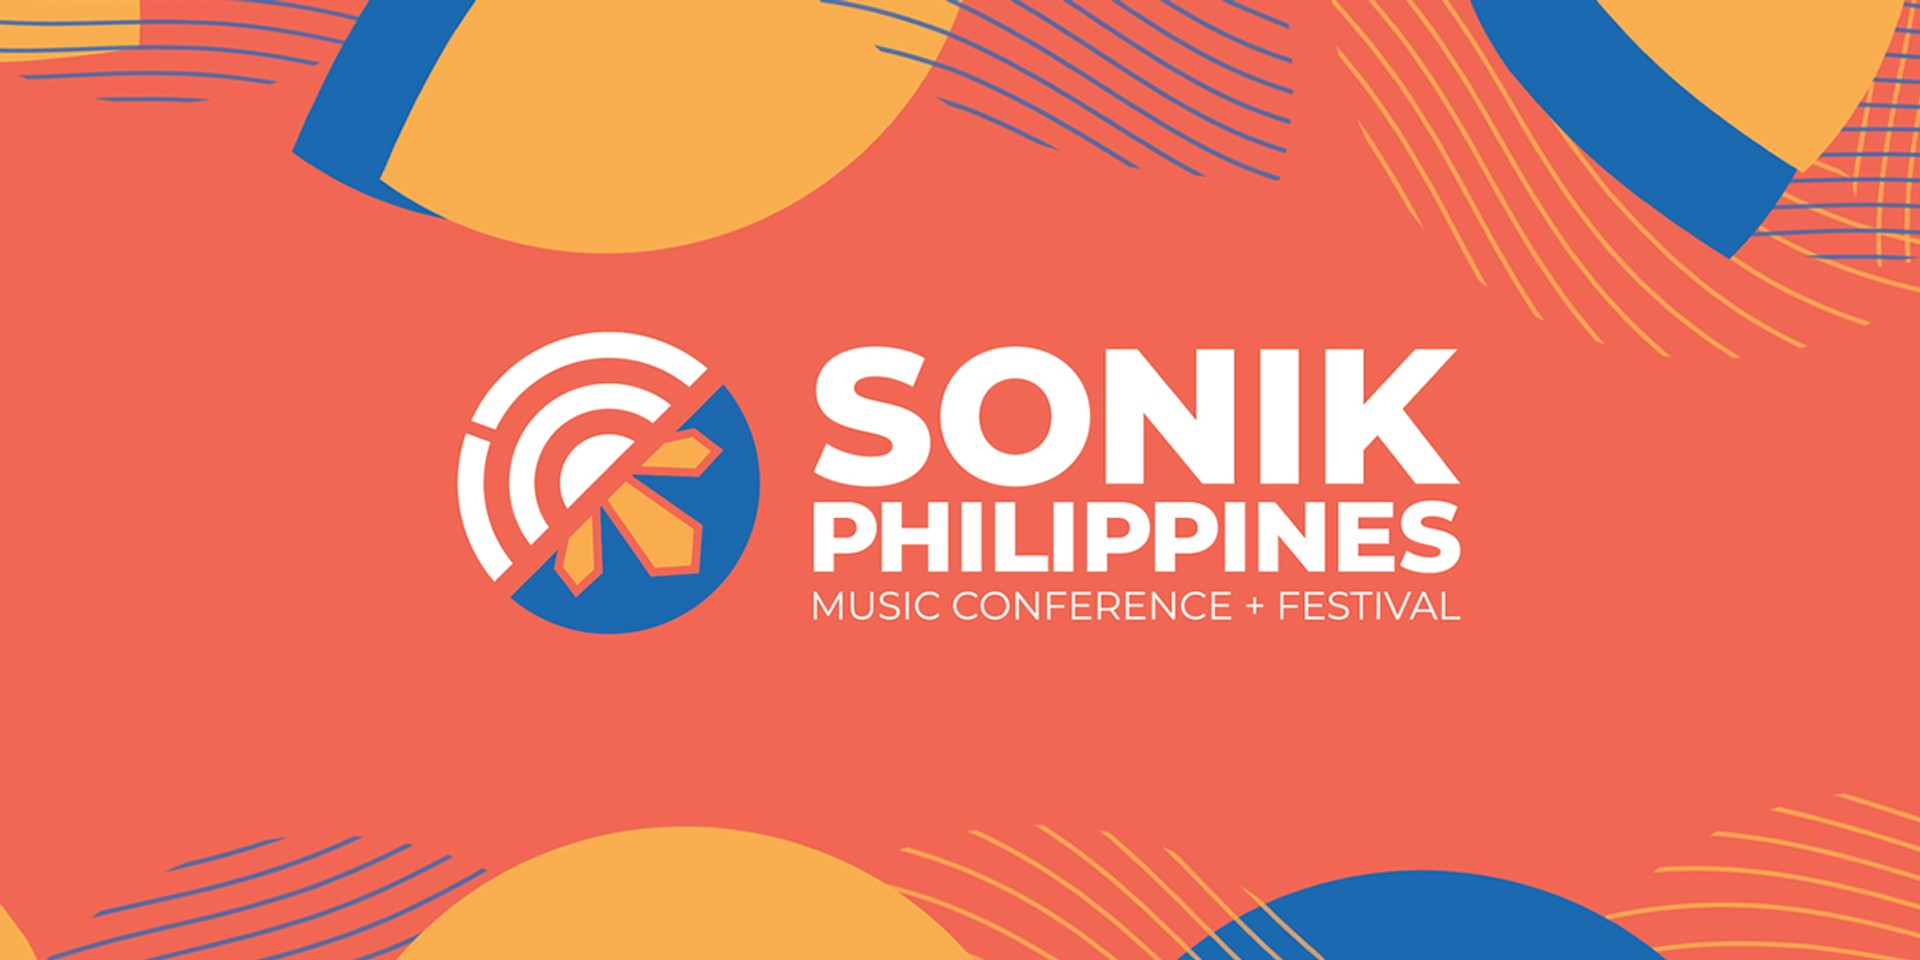 Discover the creative and business sides of the music industry at the first Sonik Philippines conference